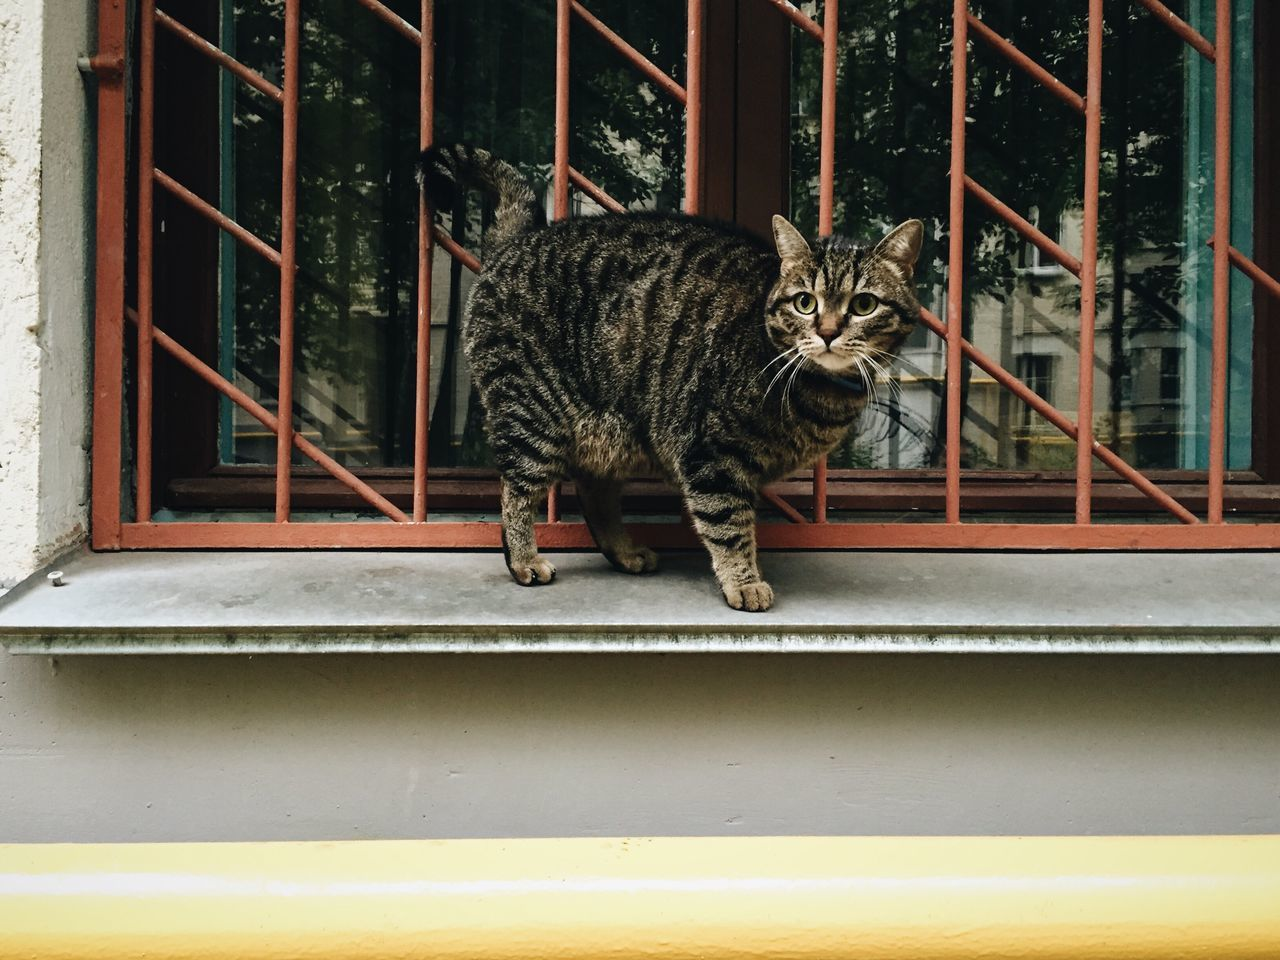 Cat Nice View I Love Cats Streetphotography Looking At Camera Animals Domestic Cat Cat Lovers